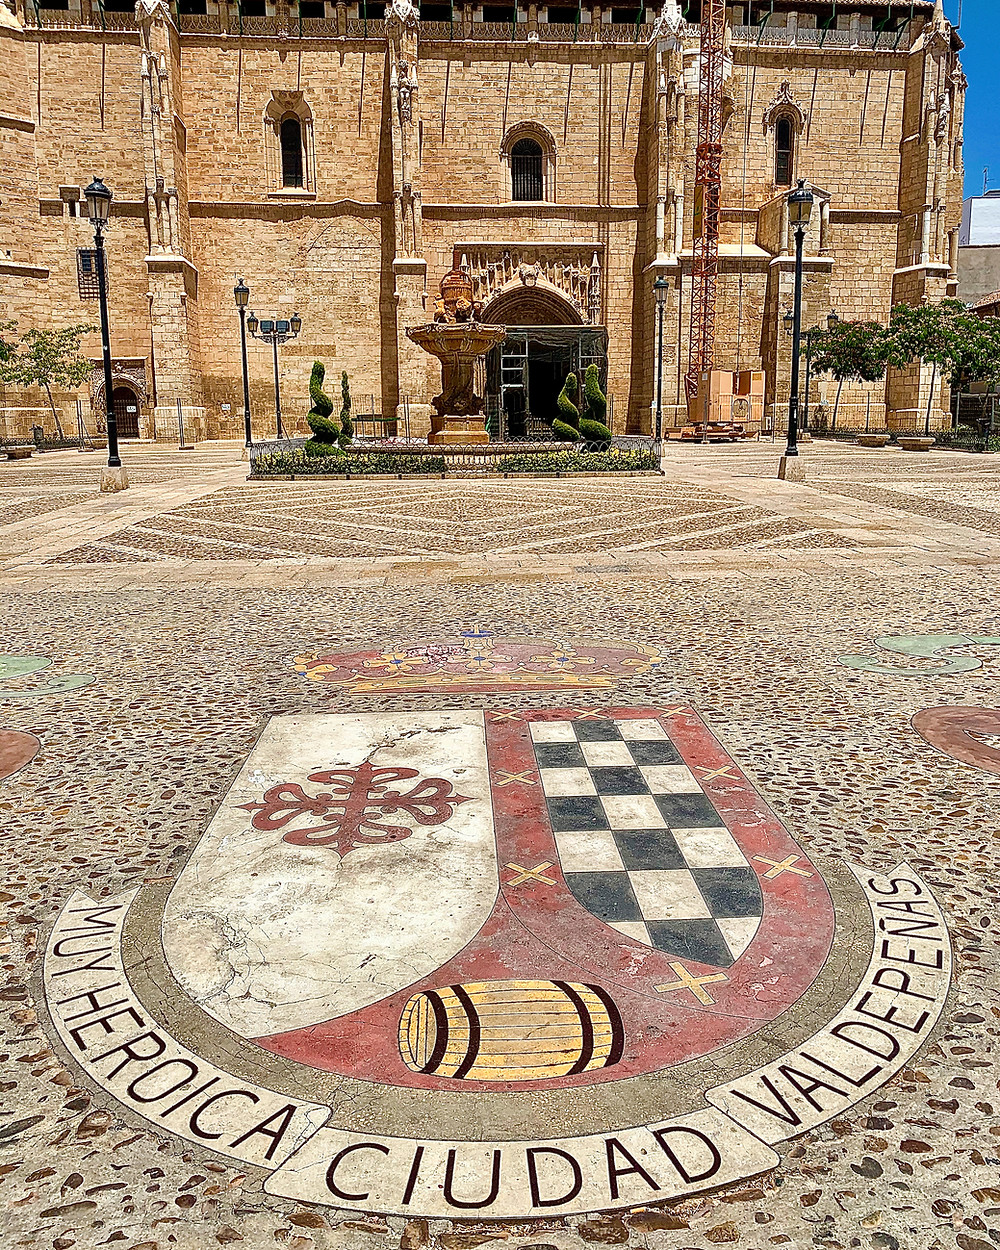 The shield of Valdepeñas in the town´s Plaza de España